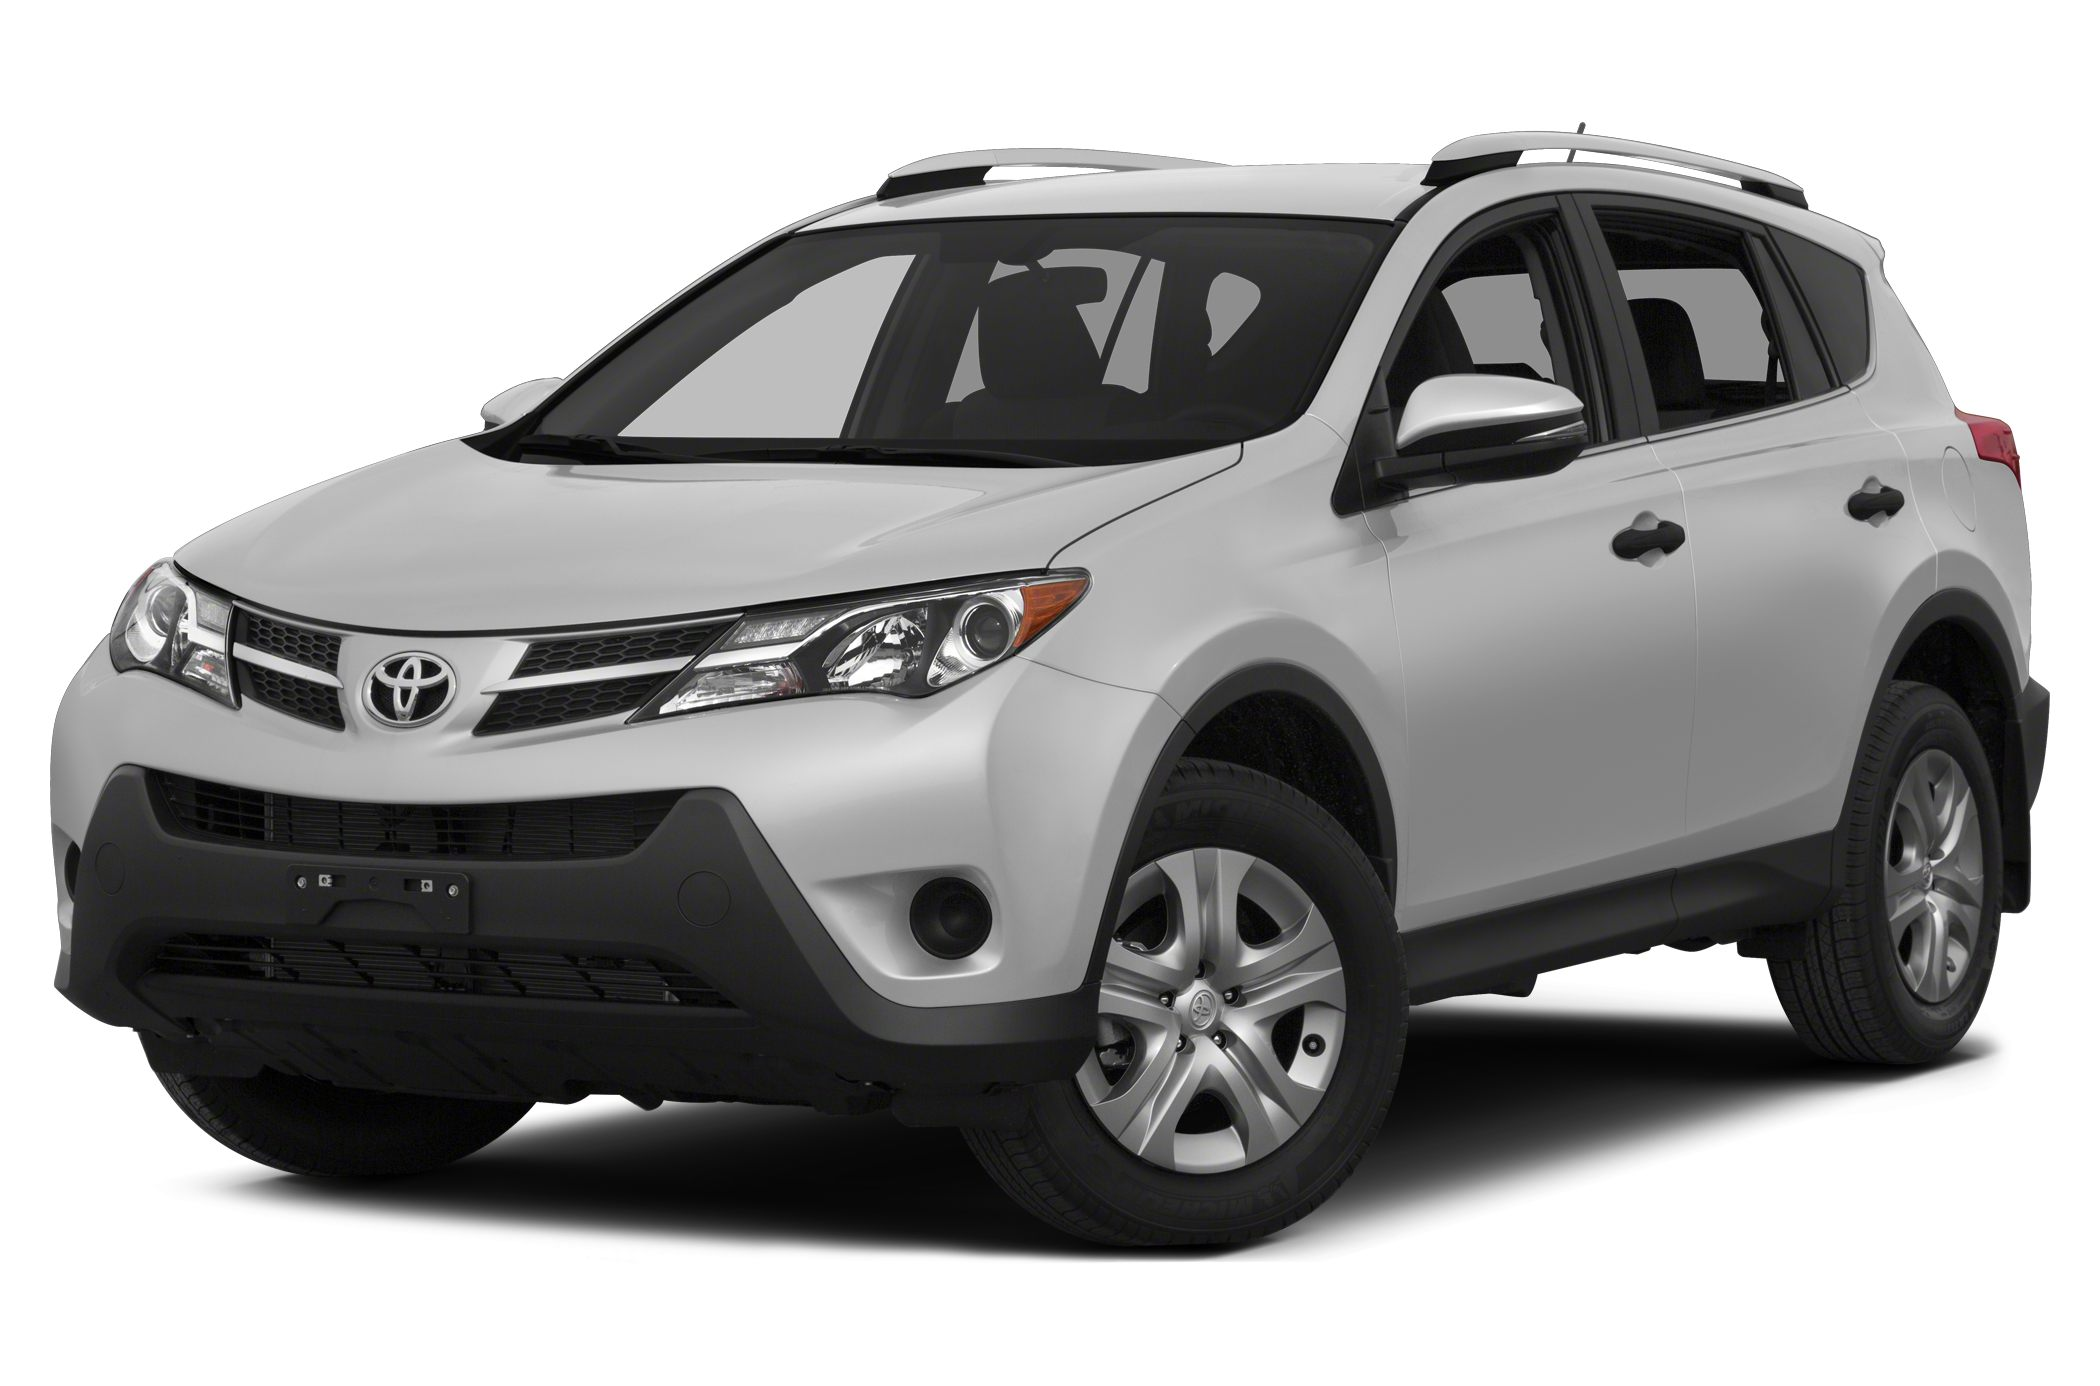 2015 Toyota RAV4 LE SUV for sale in New York for $25,800 with 0 miles